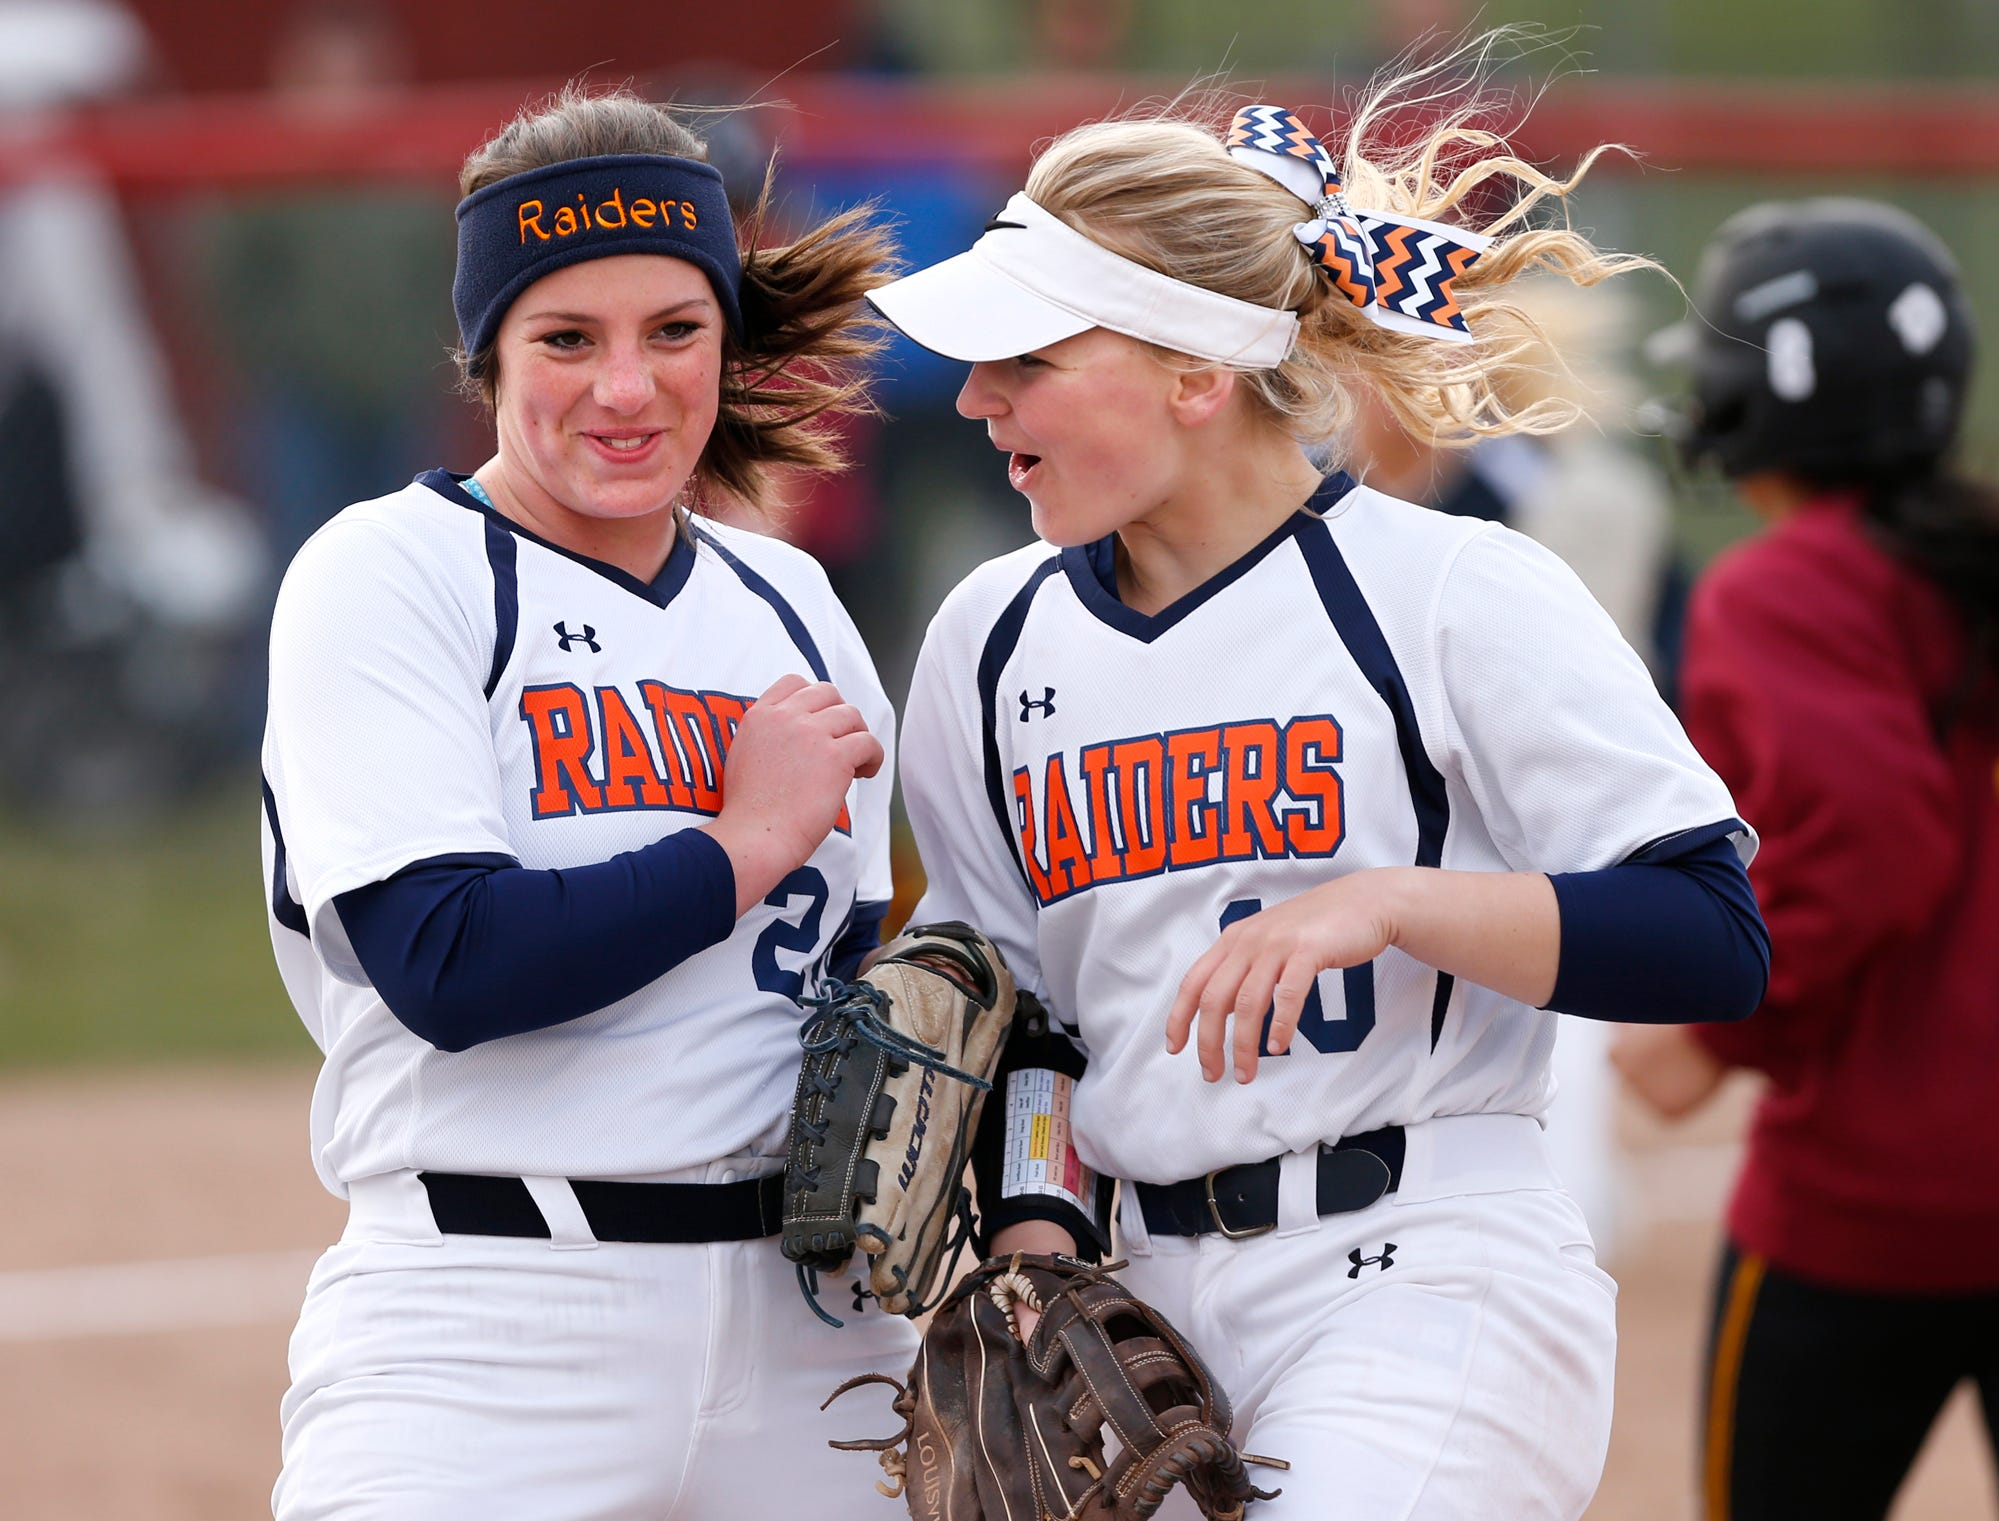 Harrison pitcher Jillian Mathis, left, celebrates with Olivia Stansbury after striking out Britney Butcher of McCutcheon with the bases loaded for the final out in the bottom of the fourth inning Tuesday, April 10, 2018, at McCutcheon High School. Harrison defeated county rival McCutcheon 7-5.